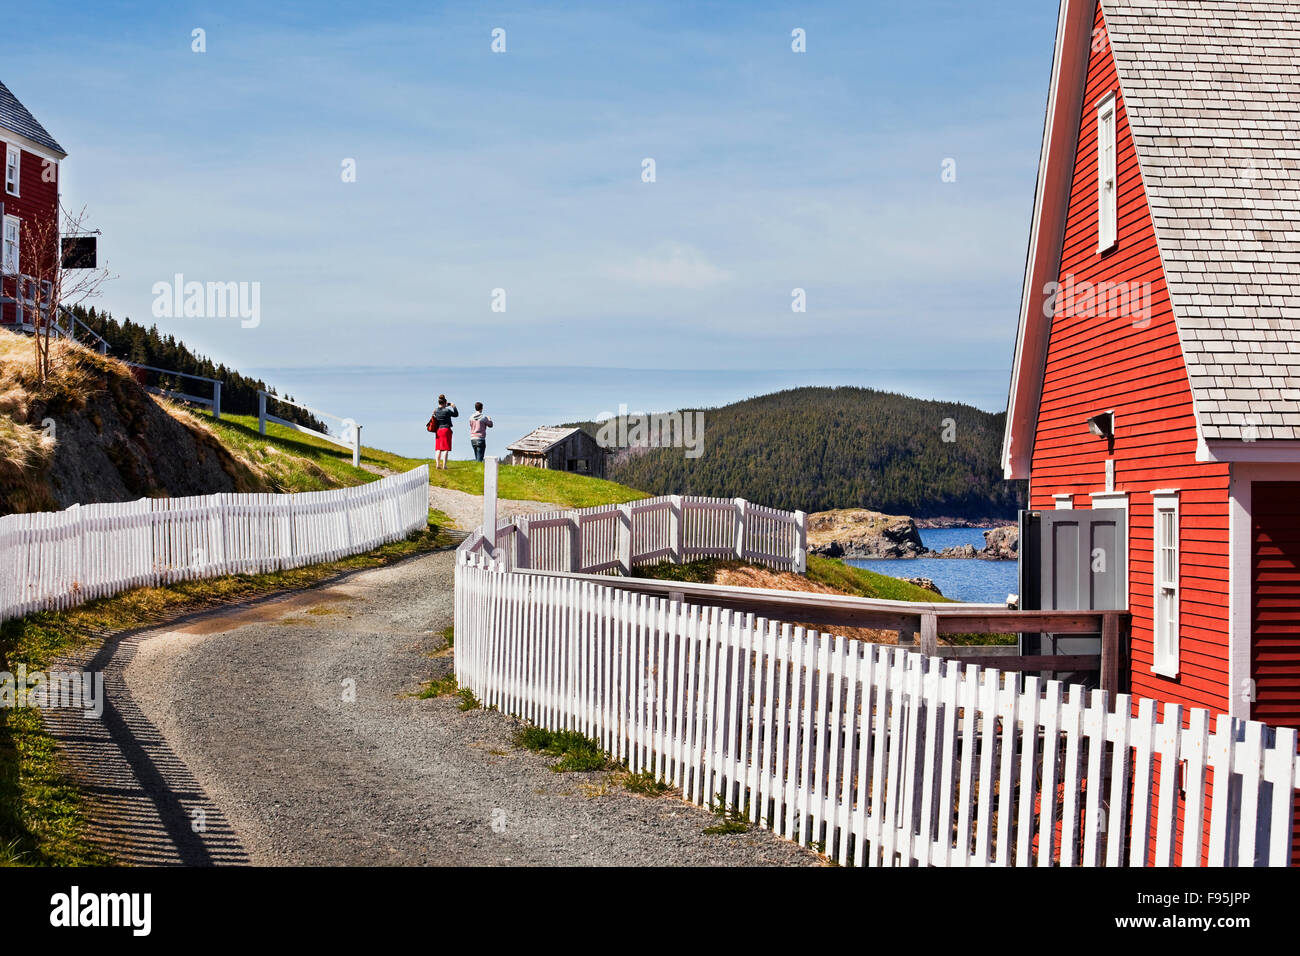 Picket fences on both sites of West Street in the town of Trinity, Newfoundland. On the right is the Rising Tide - Stock Image